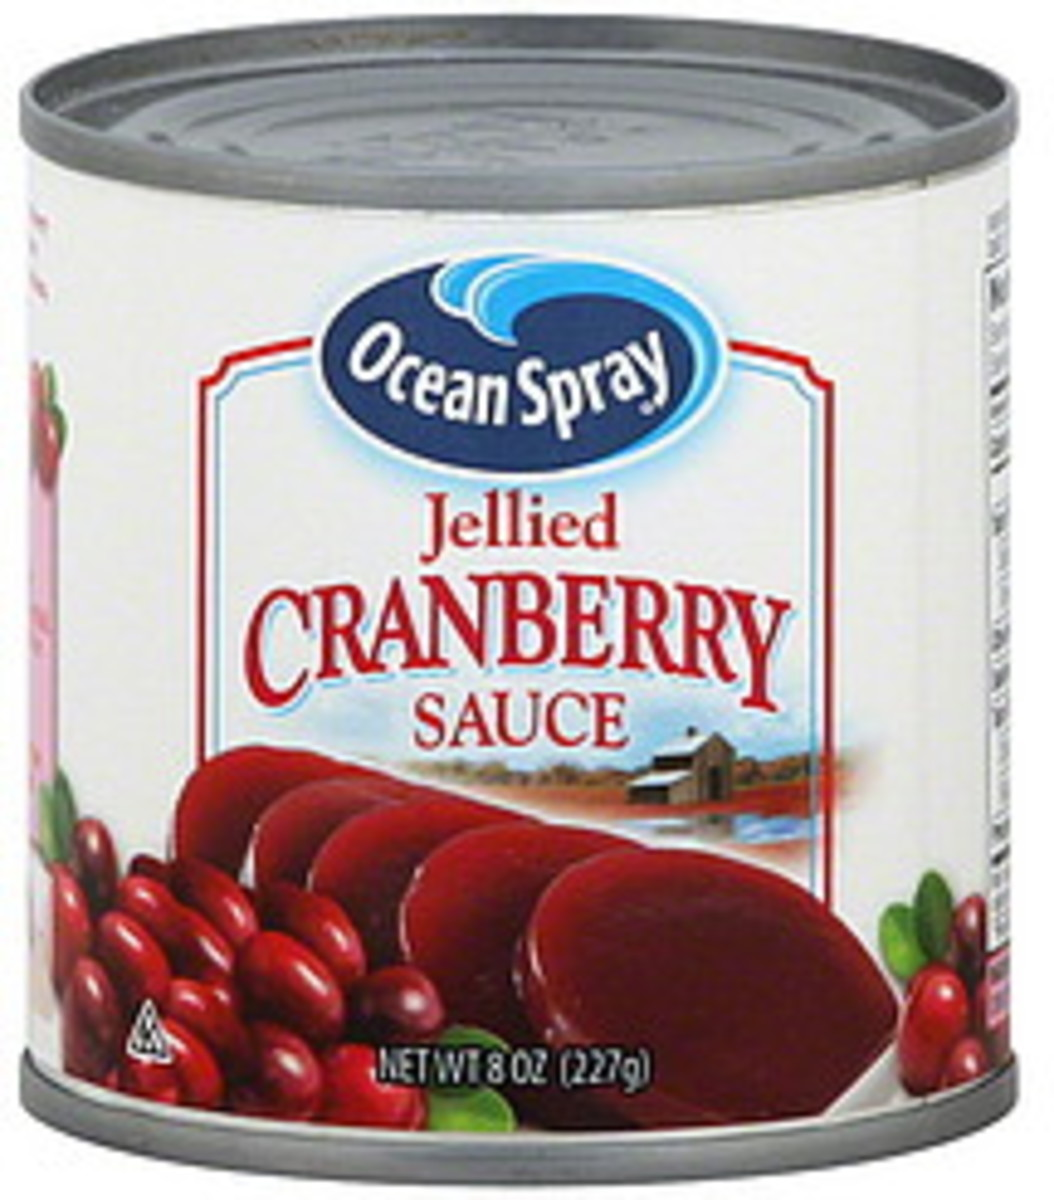 Ocean Spray cranberry jelled slices. Remember this?  We ate this when we were kids.